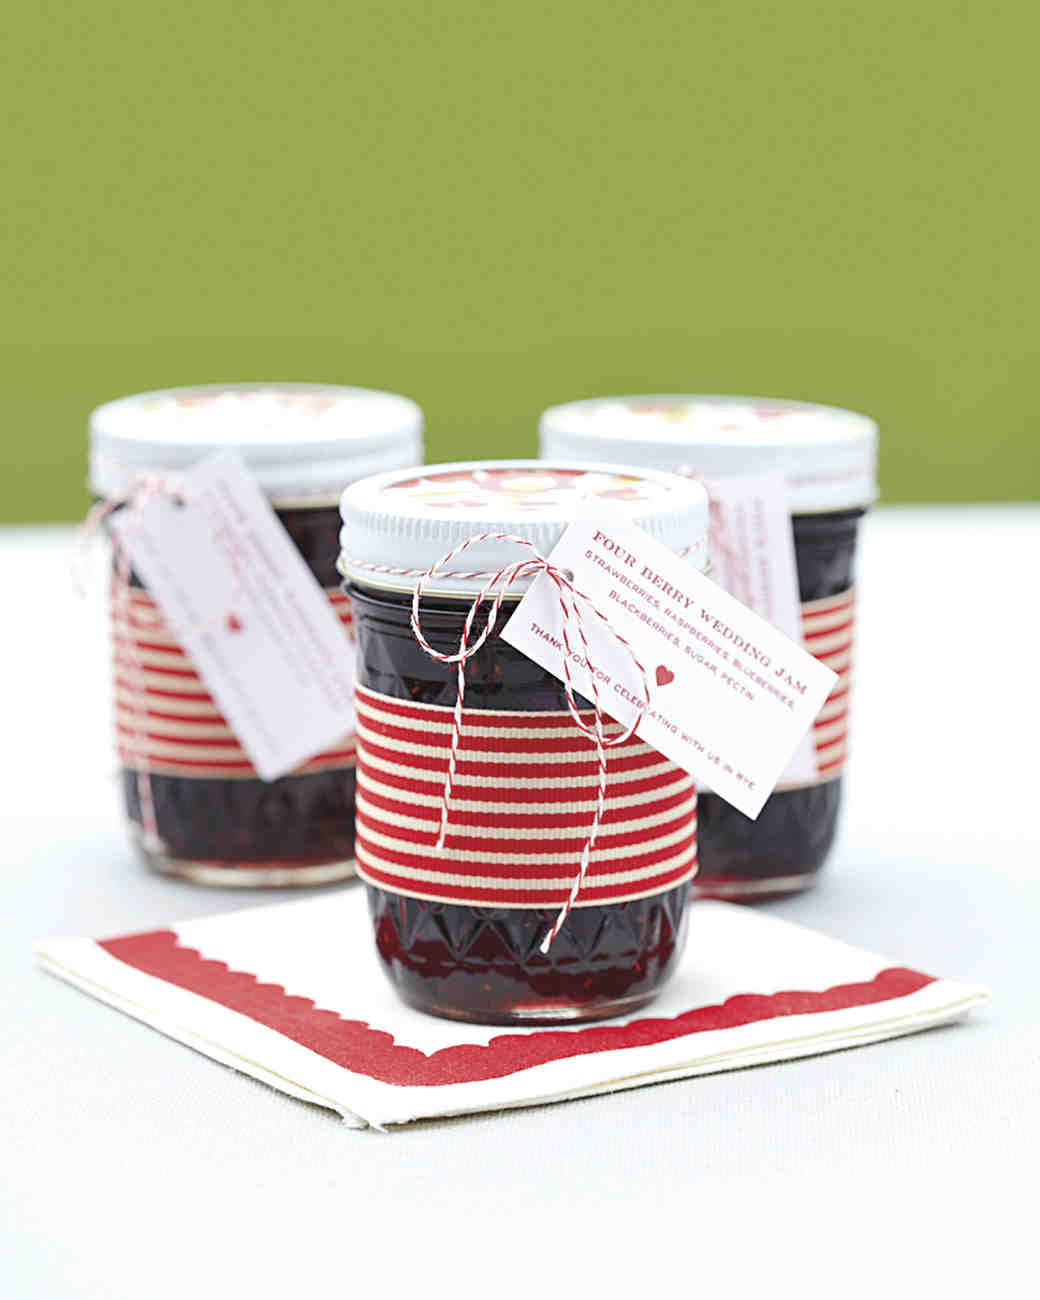 diy-bridal-shower-favors-lauren-homemade-jam-su10-0515.jpg